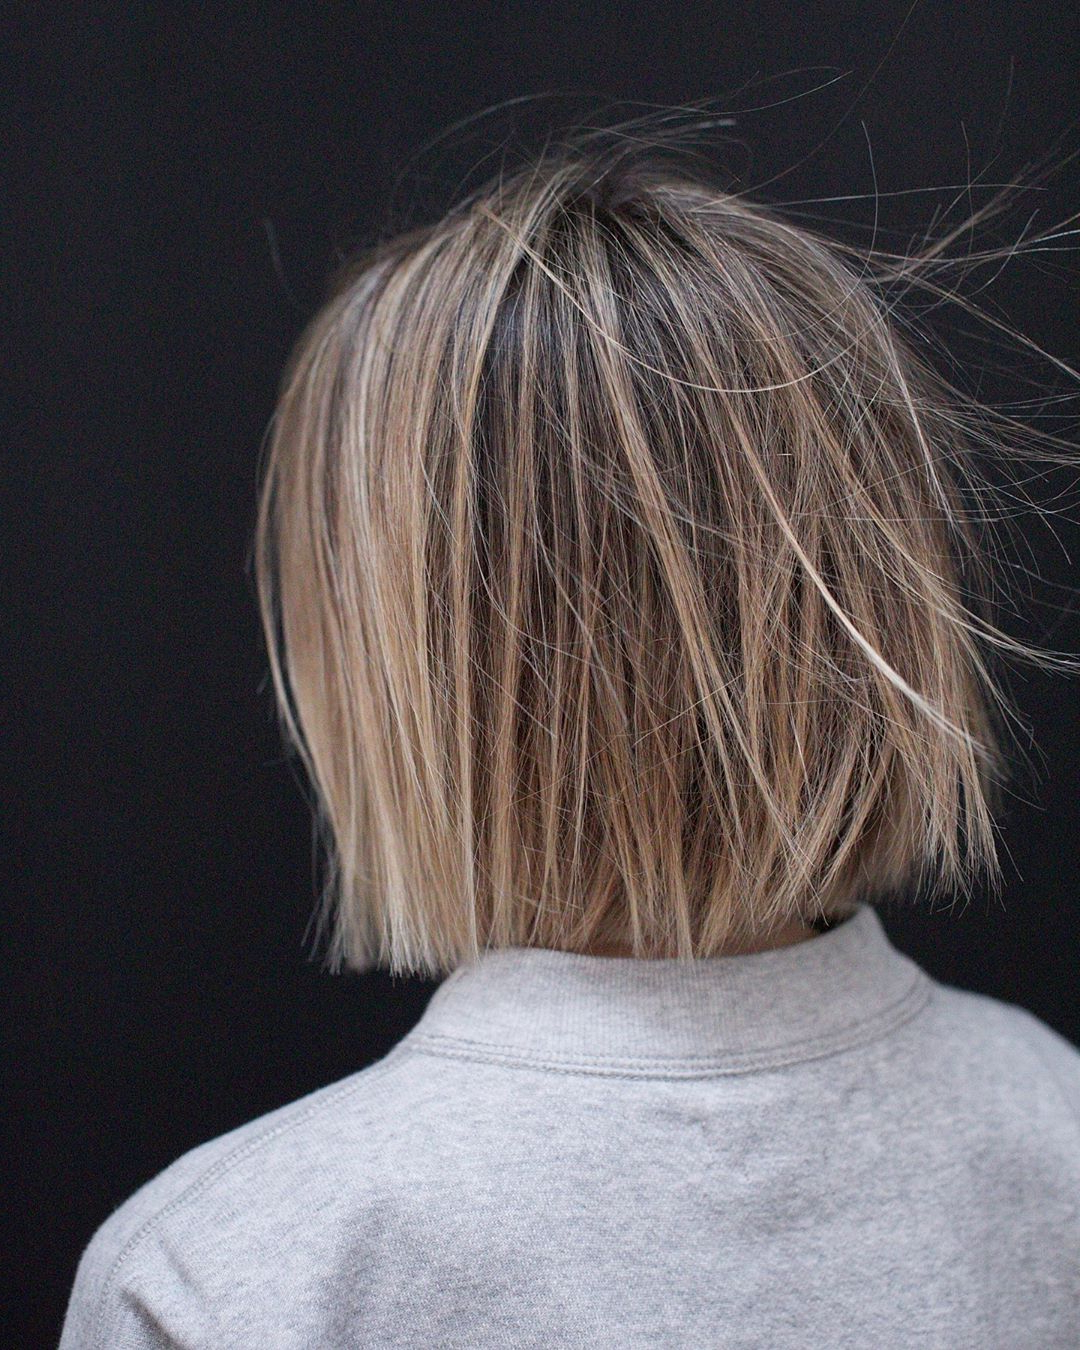 Widely Used Textured Classic Bob Hairstyles With 10 Casual Medium Bob Hair Cuts – Female Bob Hairstyles (View 20 of 20)